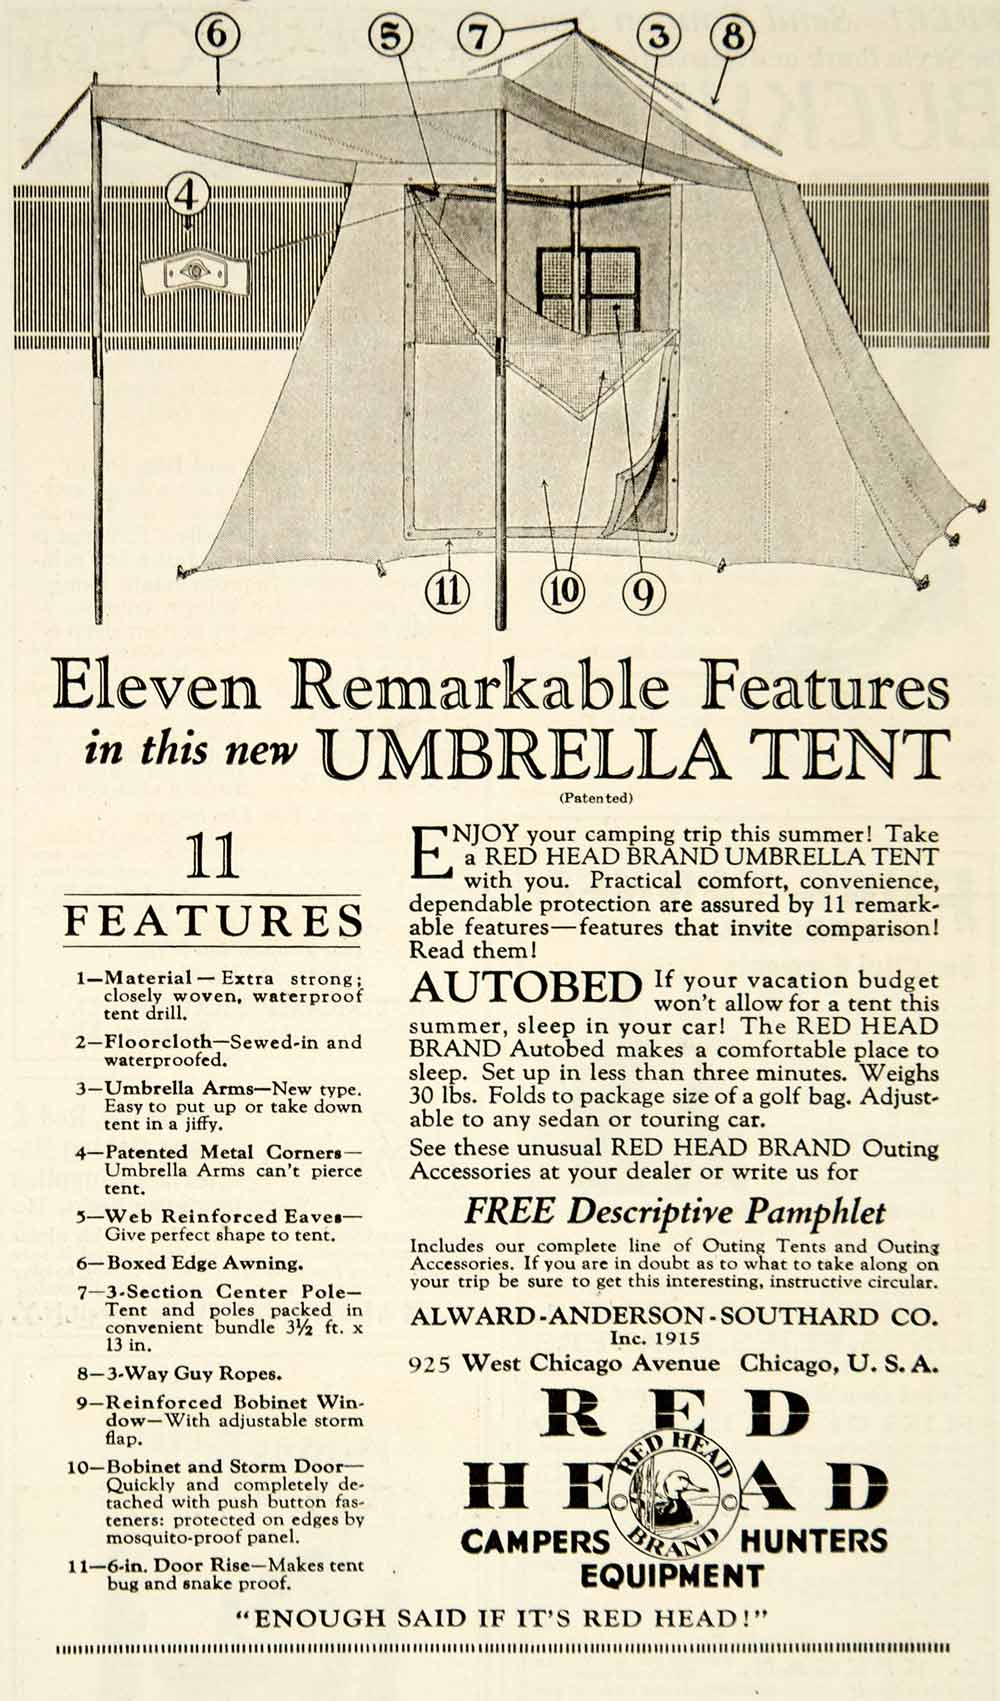 1925 Ad Red Head Umbrella Tent Camping Alward-Anderson-Southard Sporting YOR1